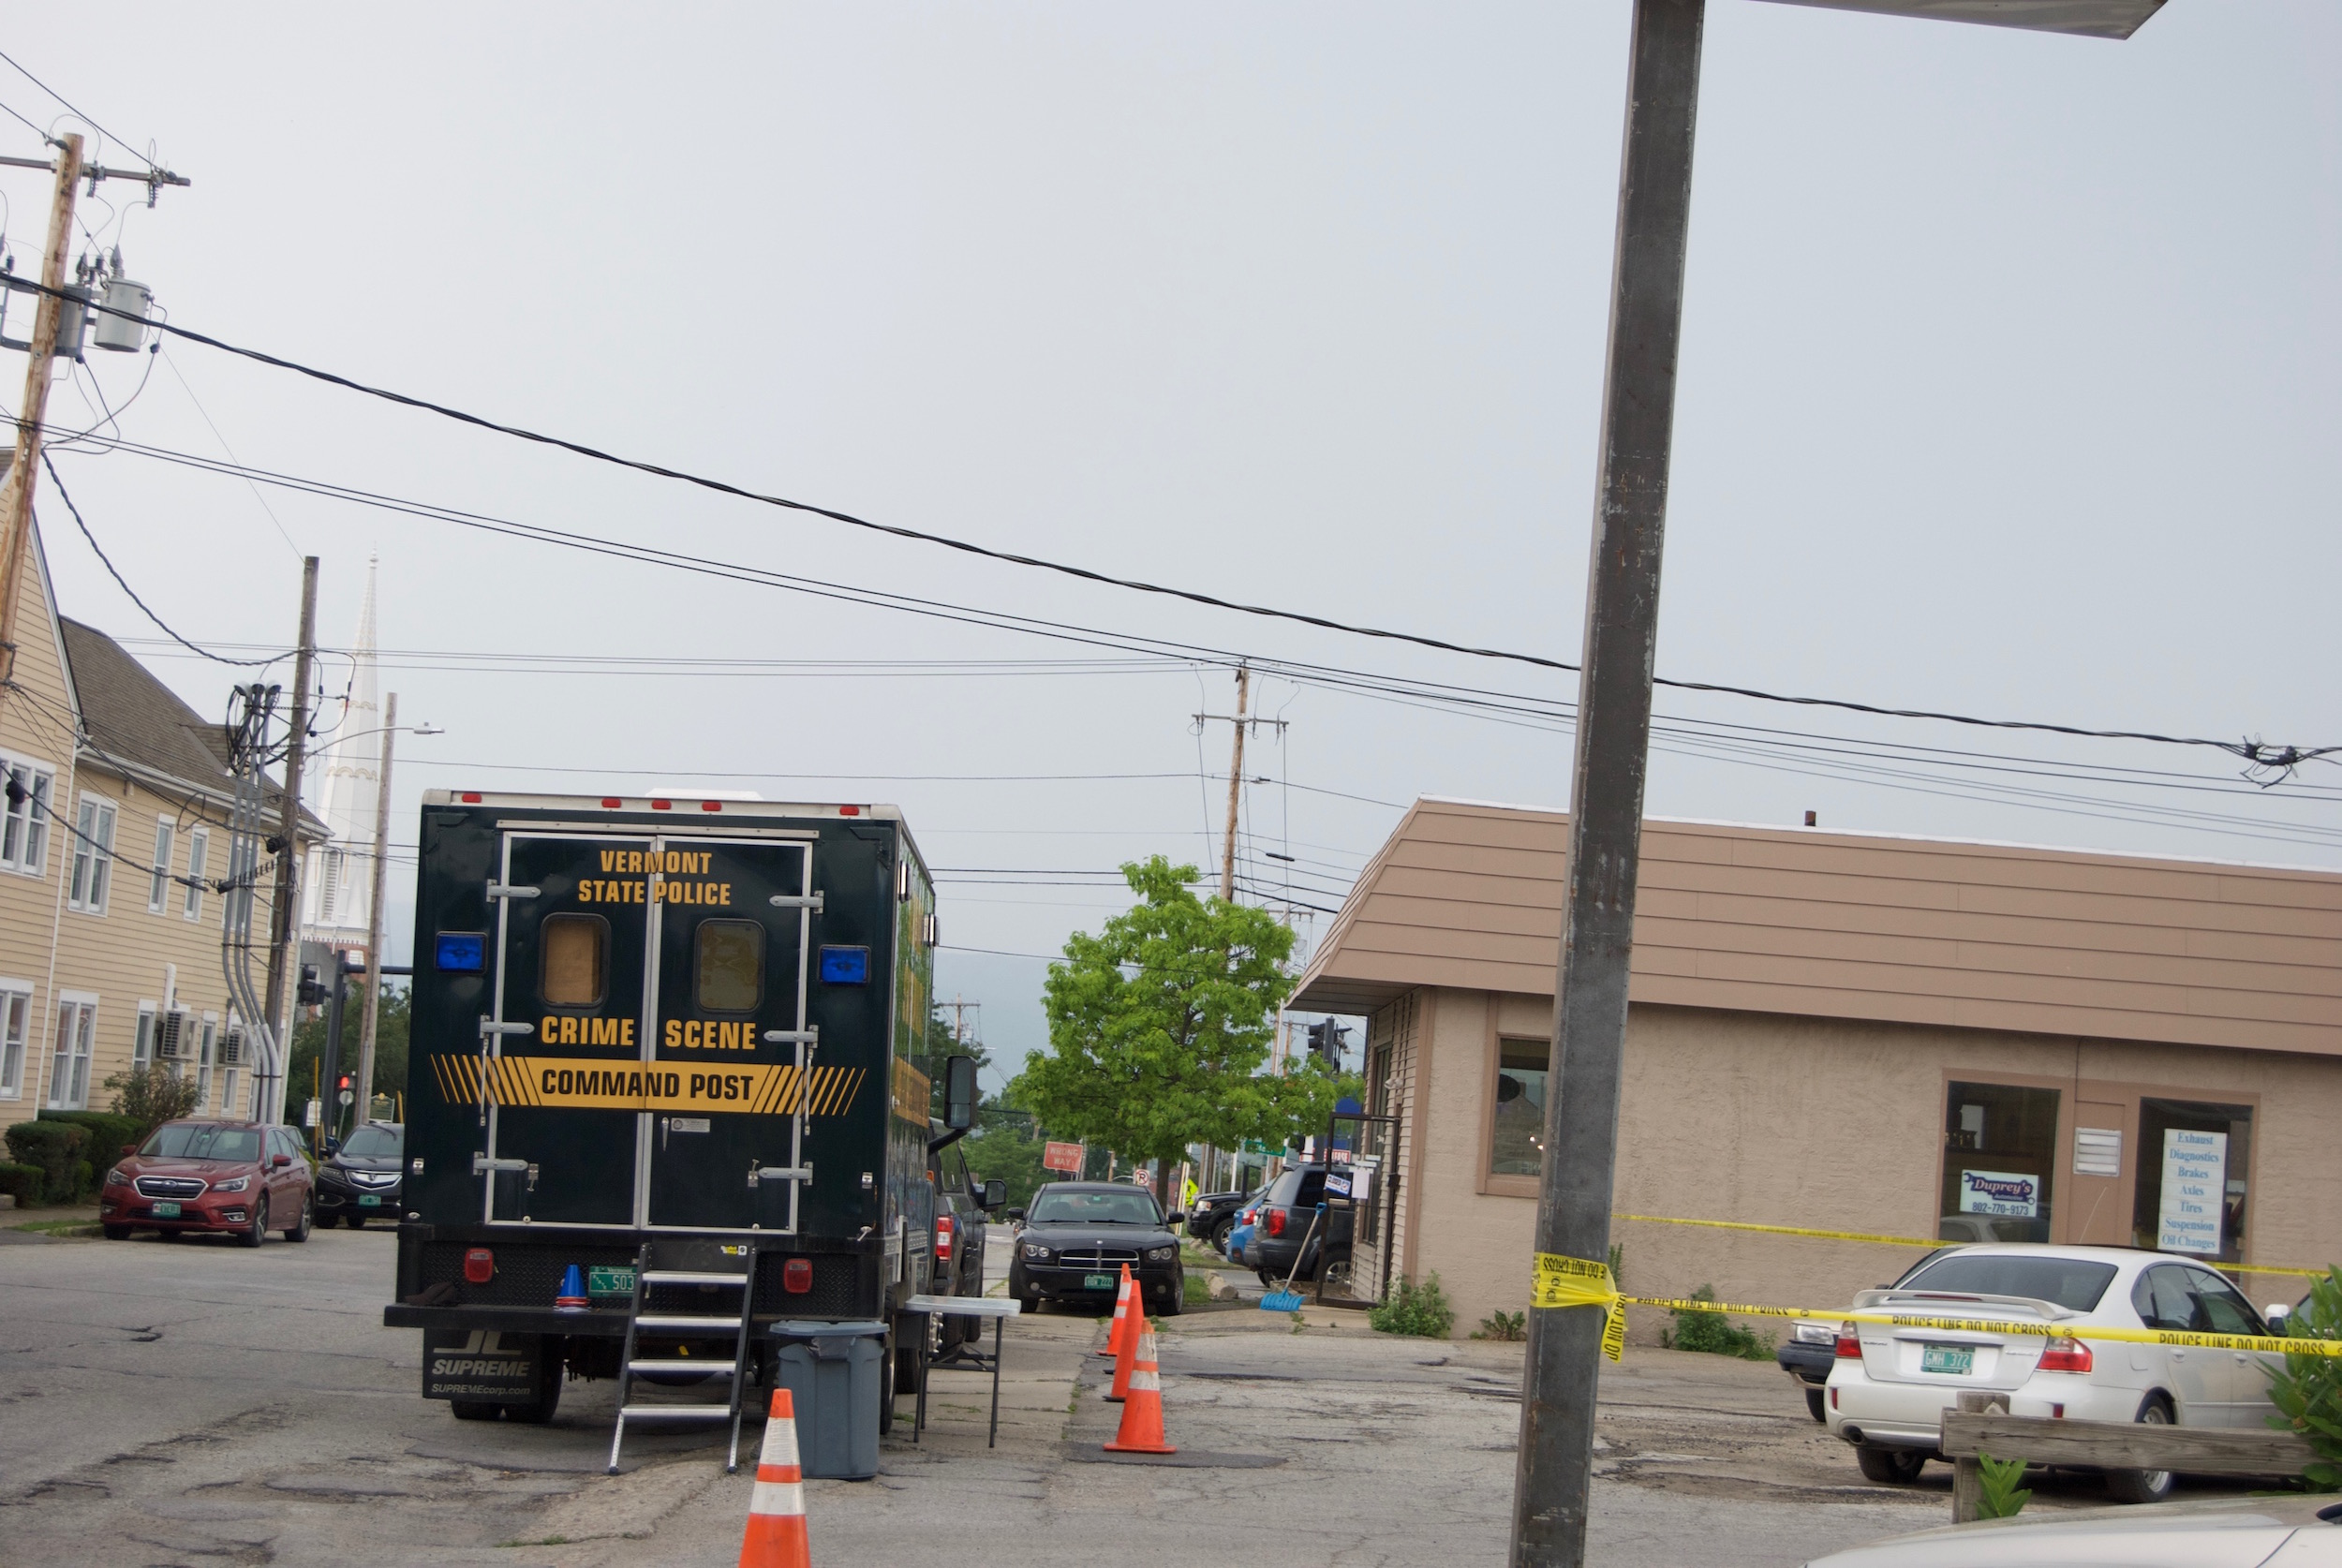 Investigators for the Vermont State Police were on the scene of an officer-involved shooting in Rutland City early Wednesday. Photo by Emma Cotton/VTDigger